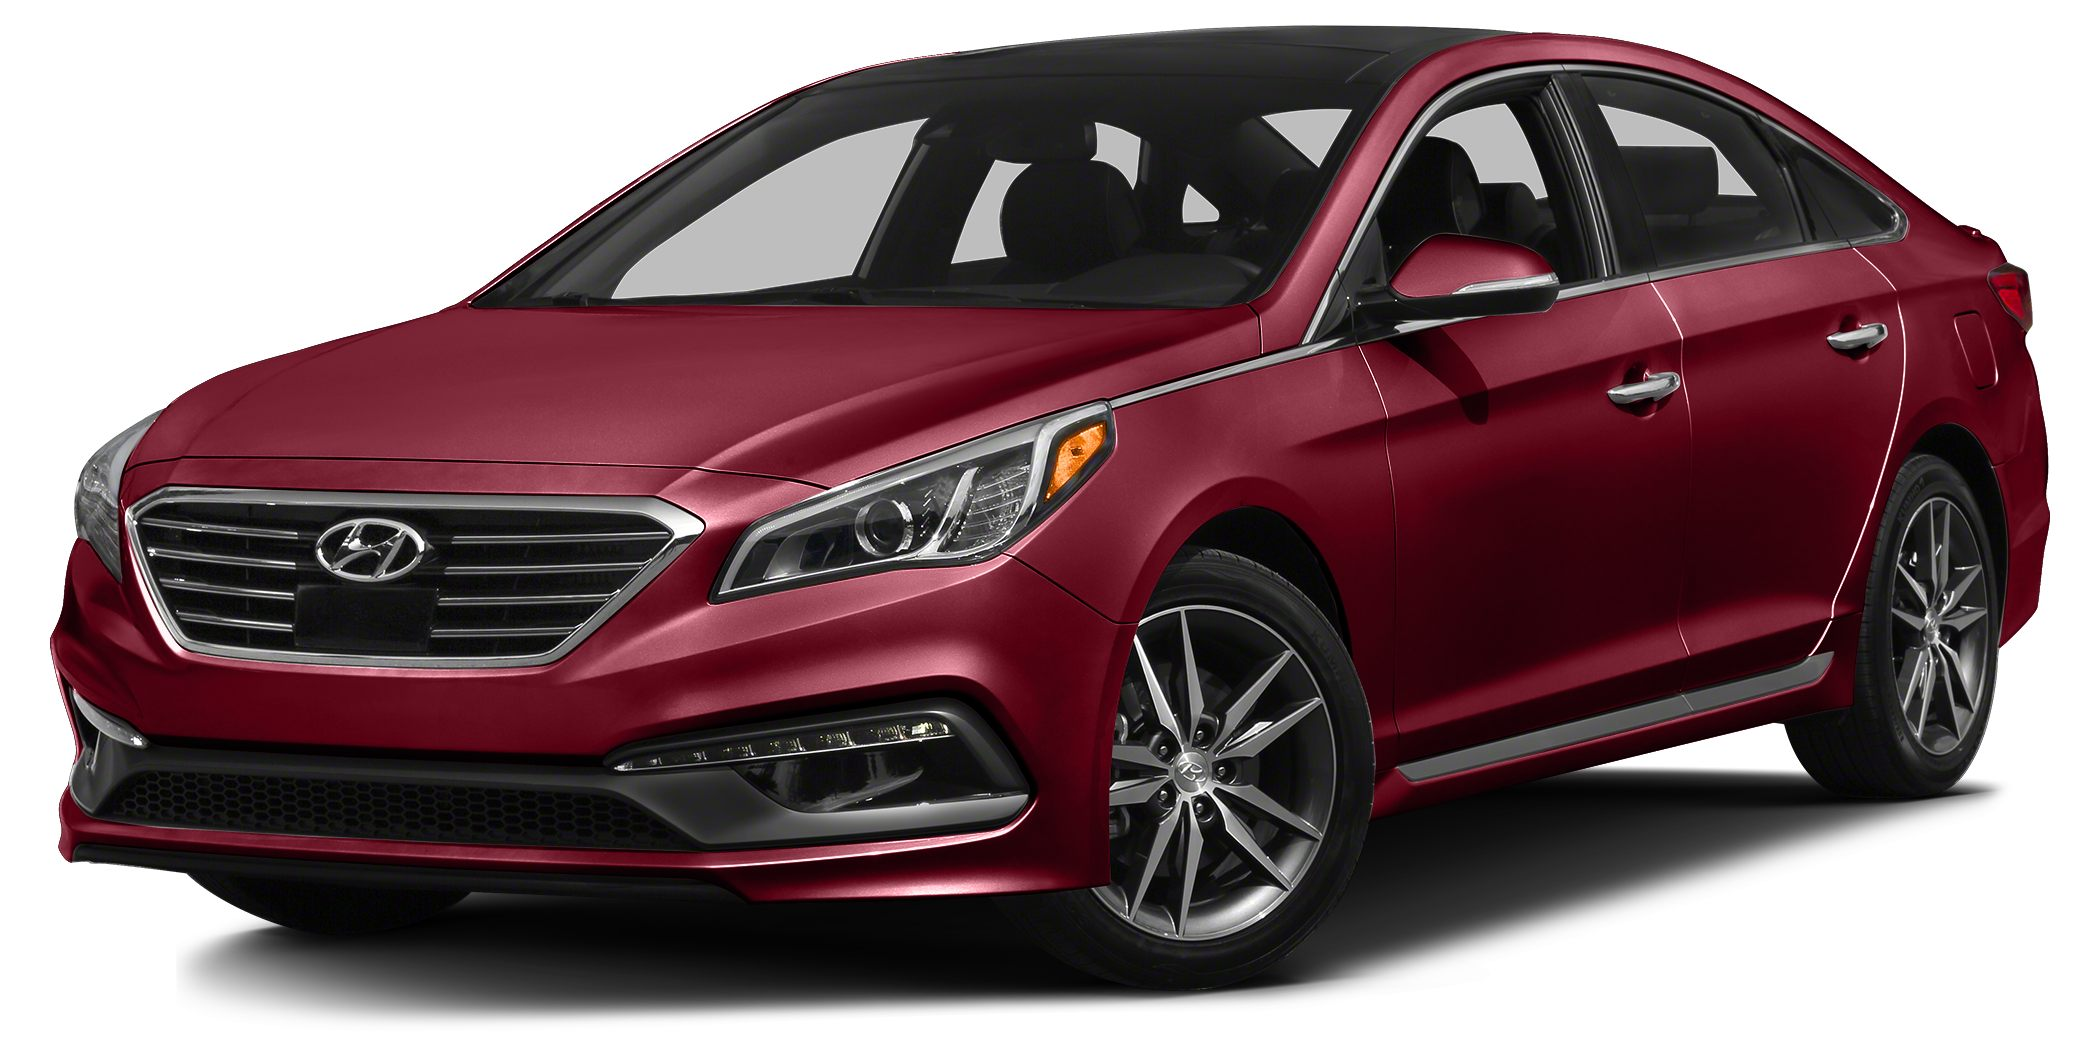 2015 Hyundai Sonata Sport Home of the 20yr200k mile warranty Miles 15Color Shale Gray Metallic